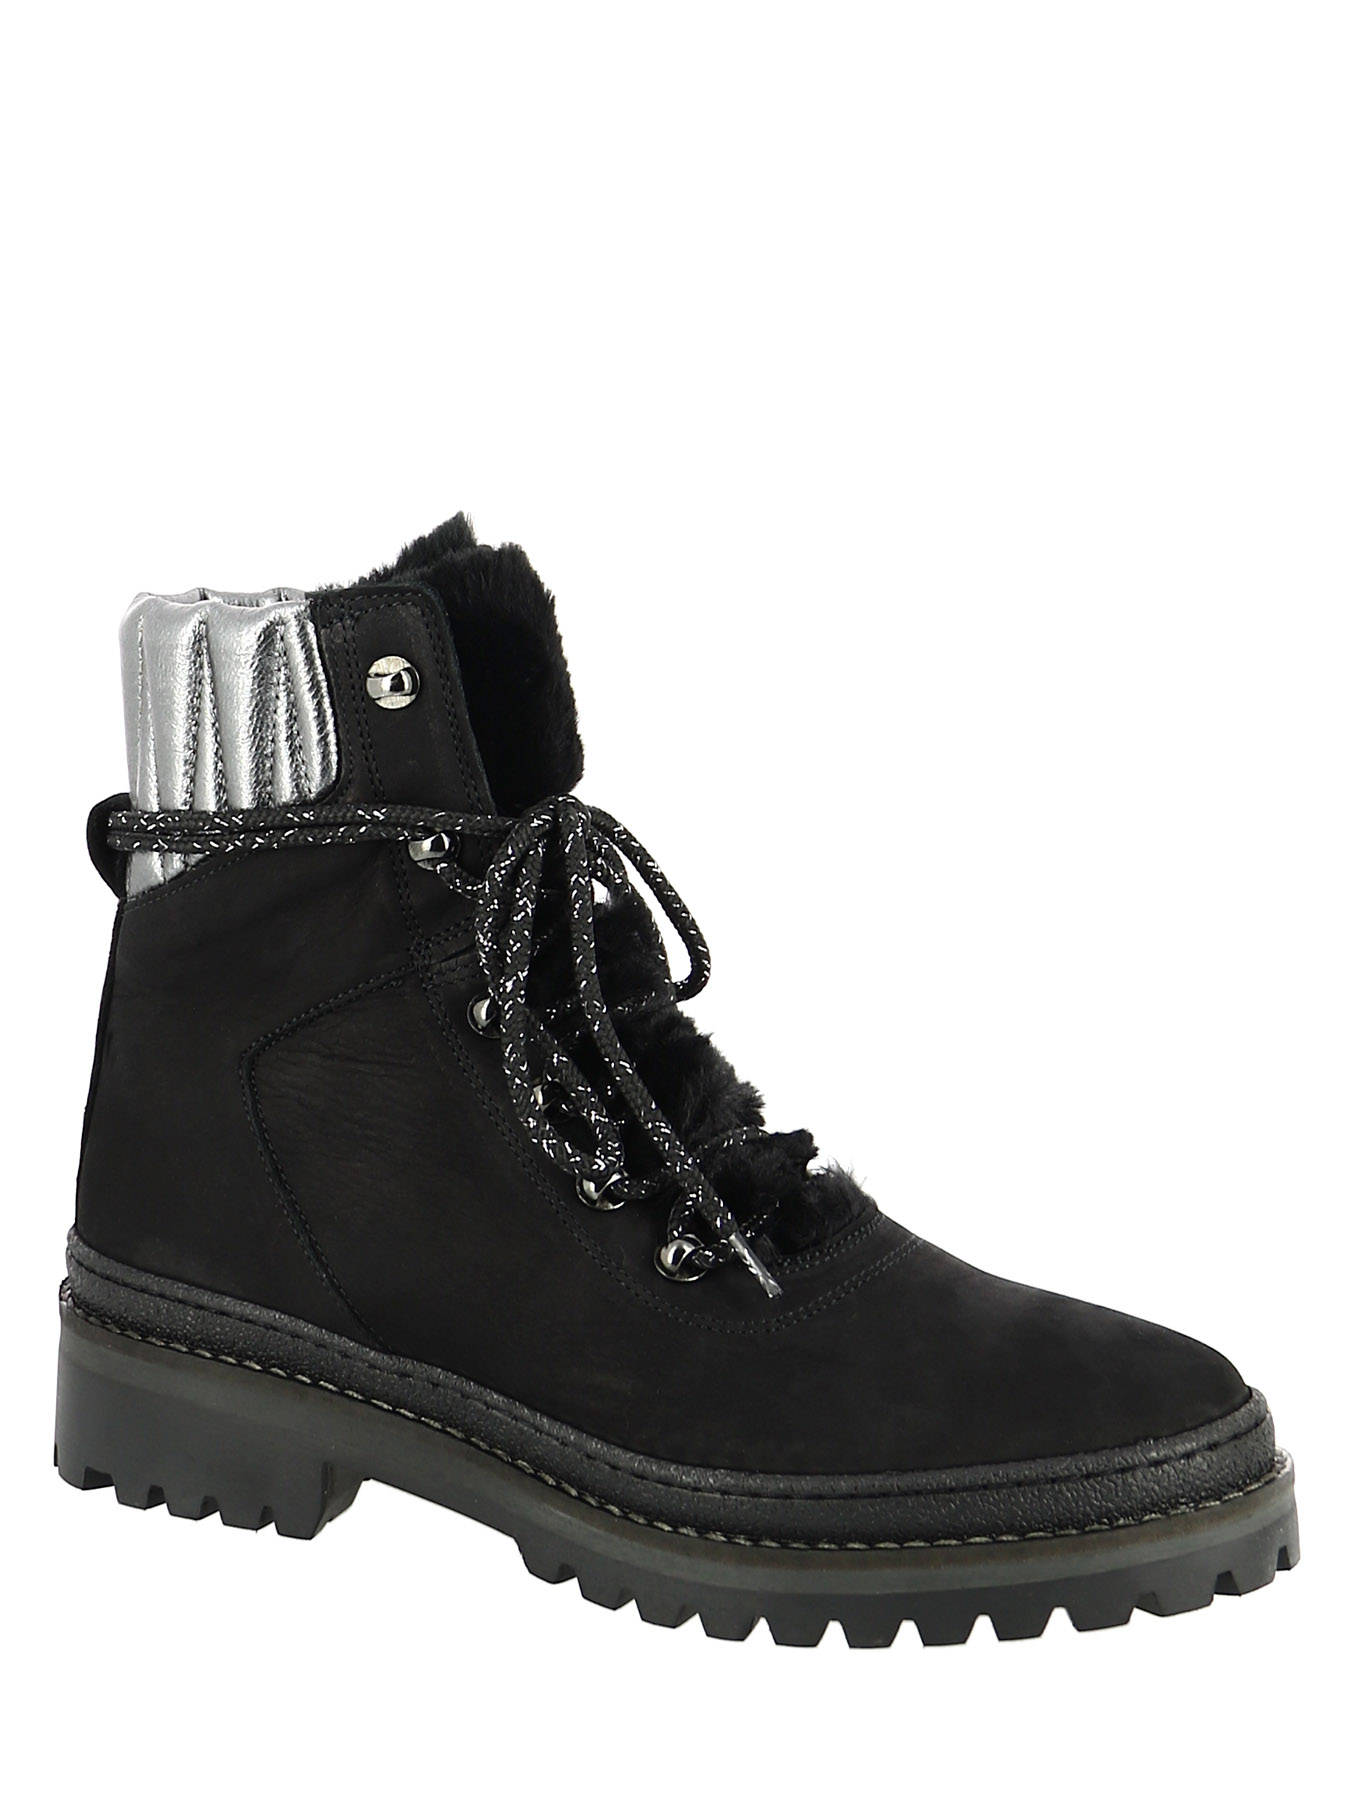 4494a6a5280573 Tommy Hilfiger Boots WARMILED.LAC UP - best prices.